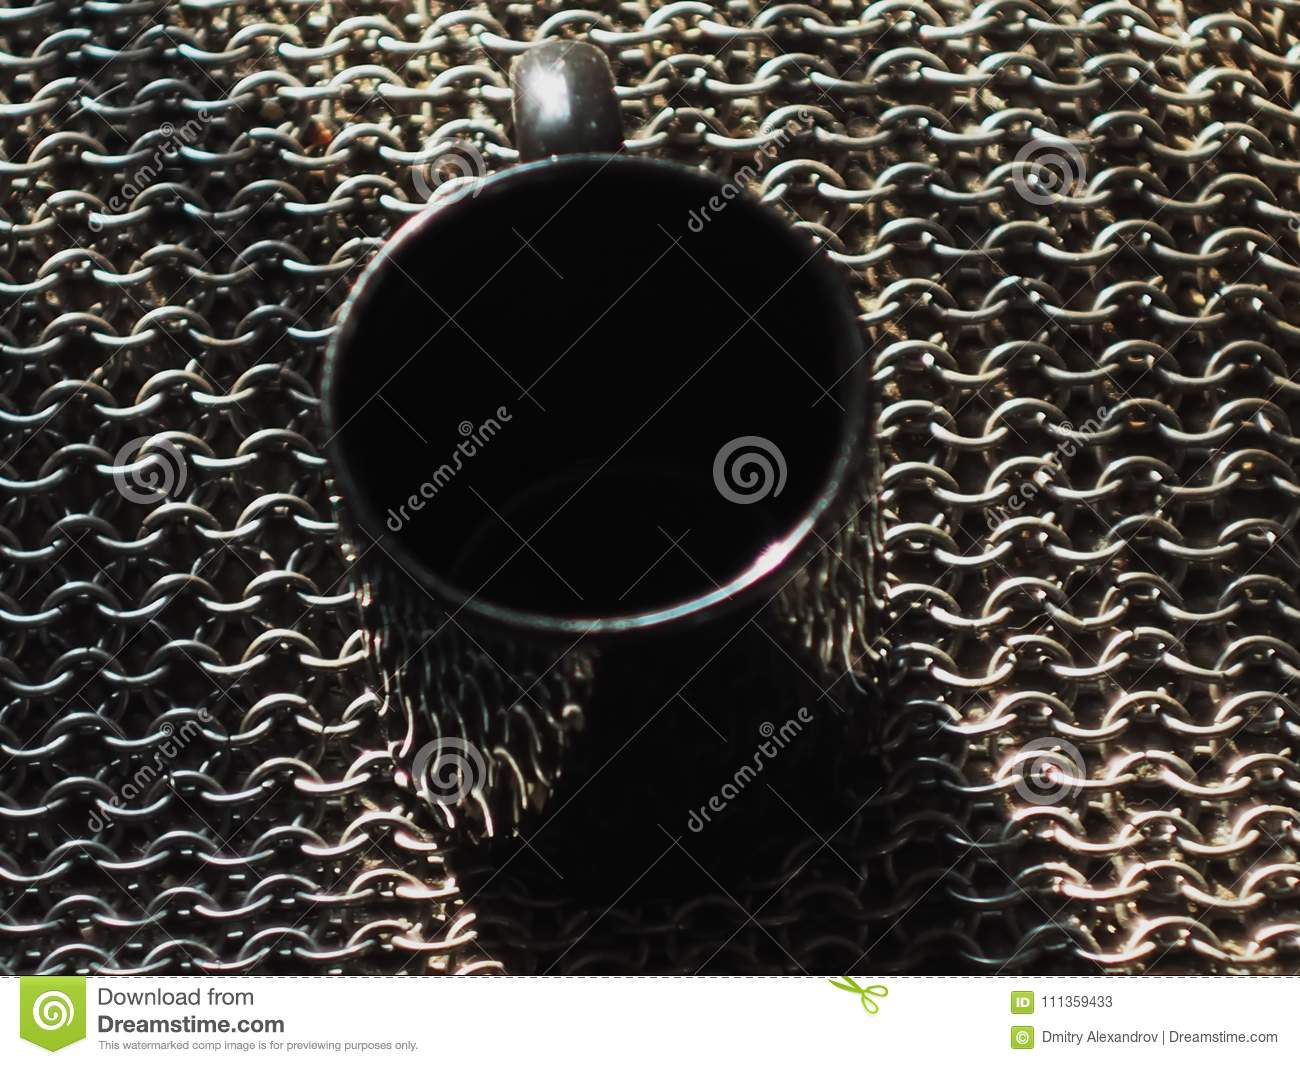 Metal Rings Woven Together Background Metal Mug Stands Stock Image